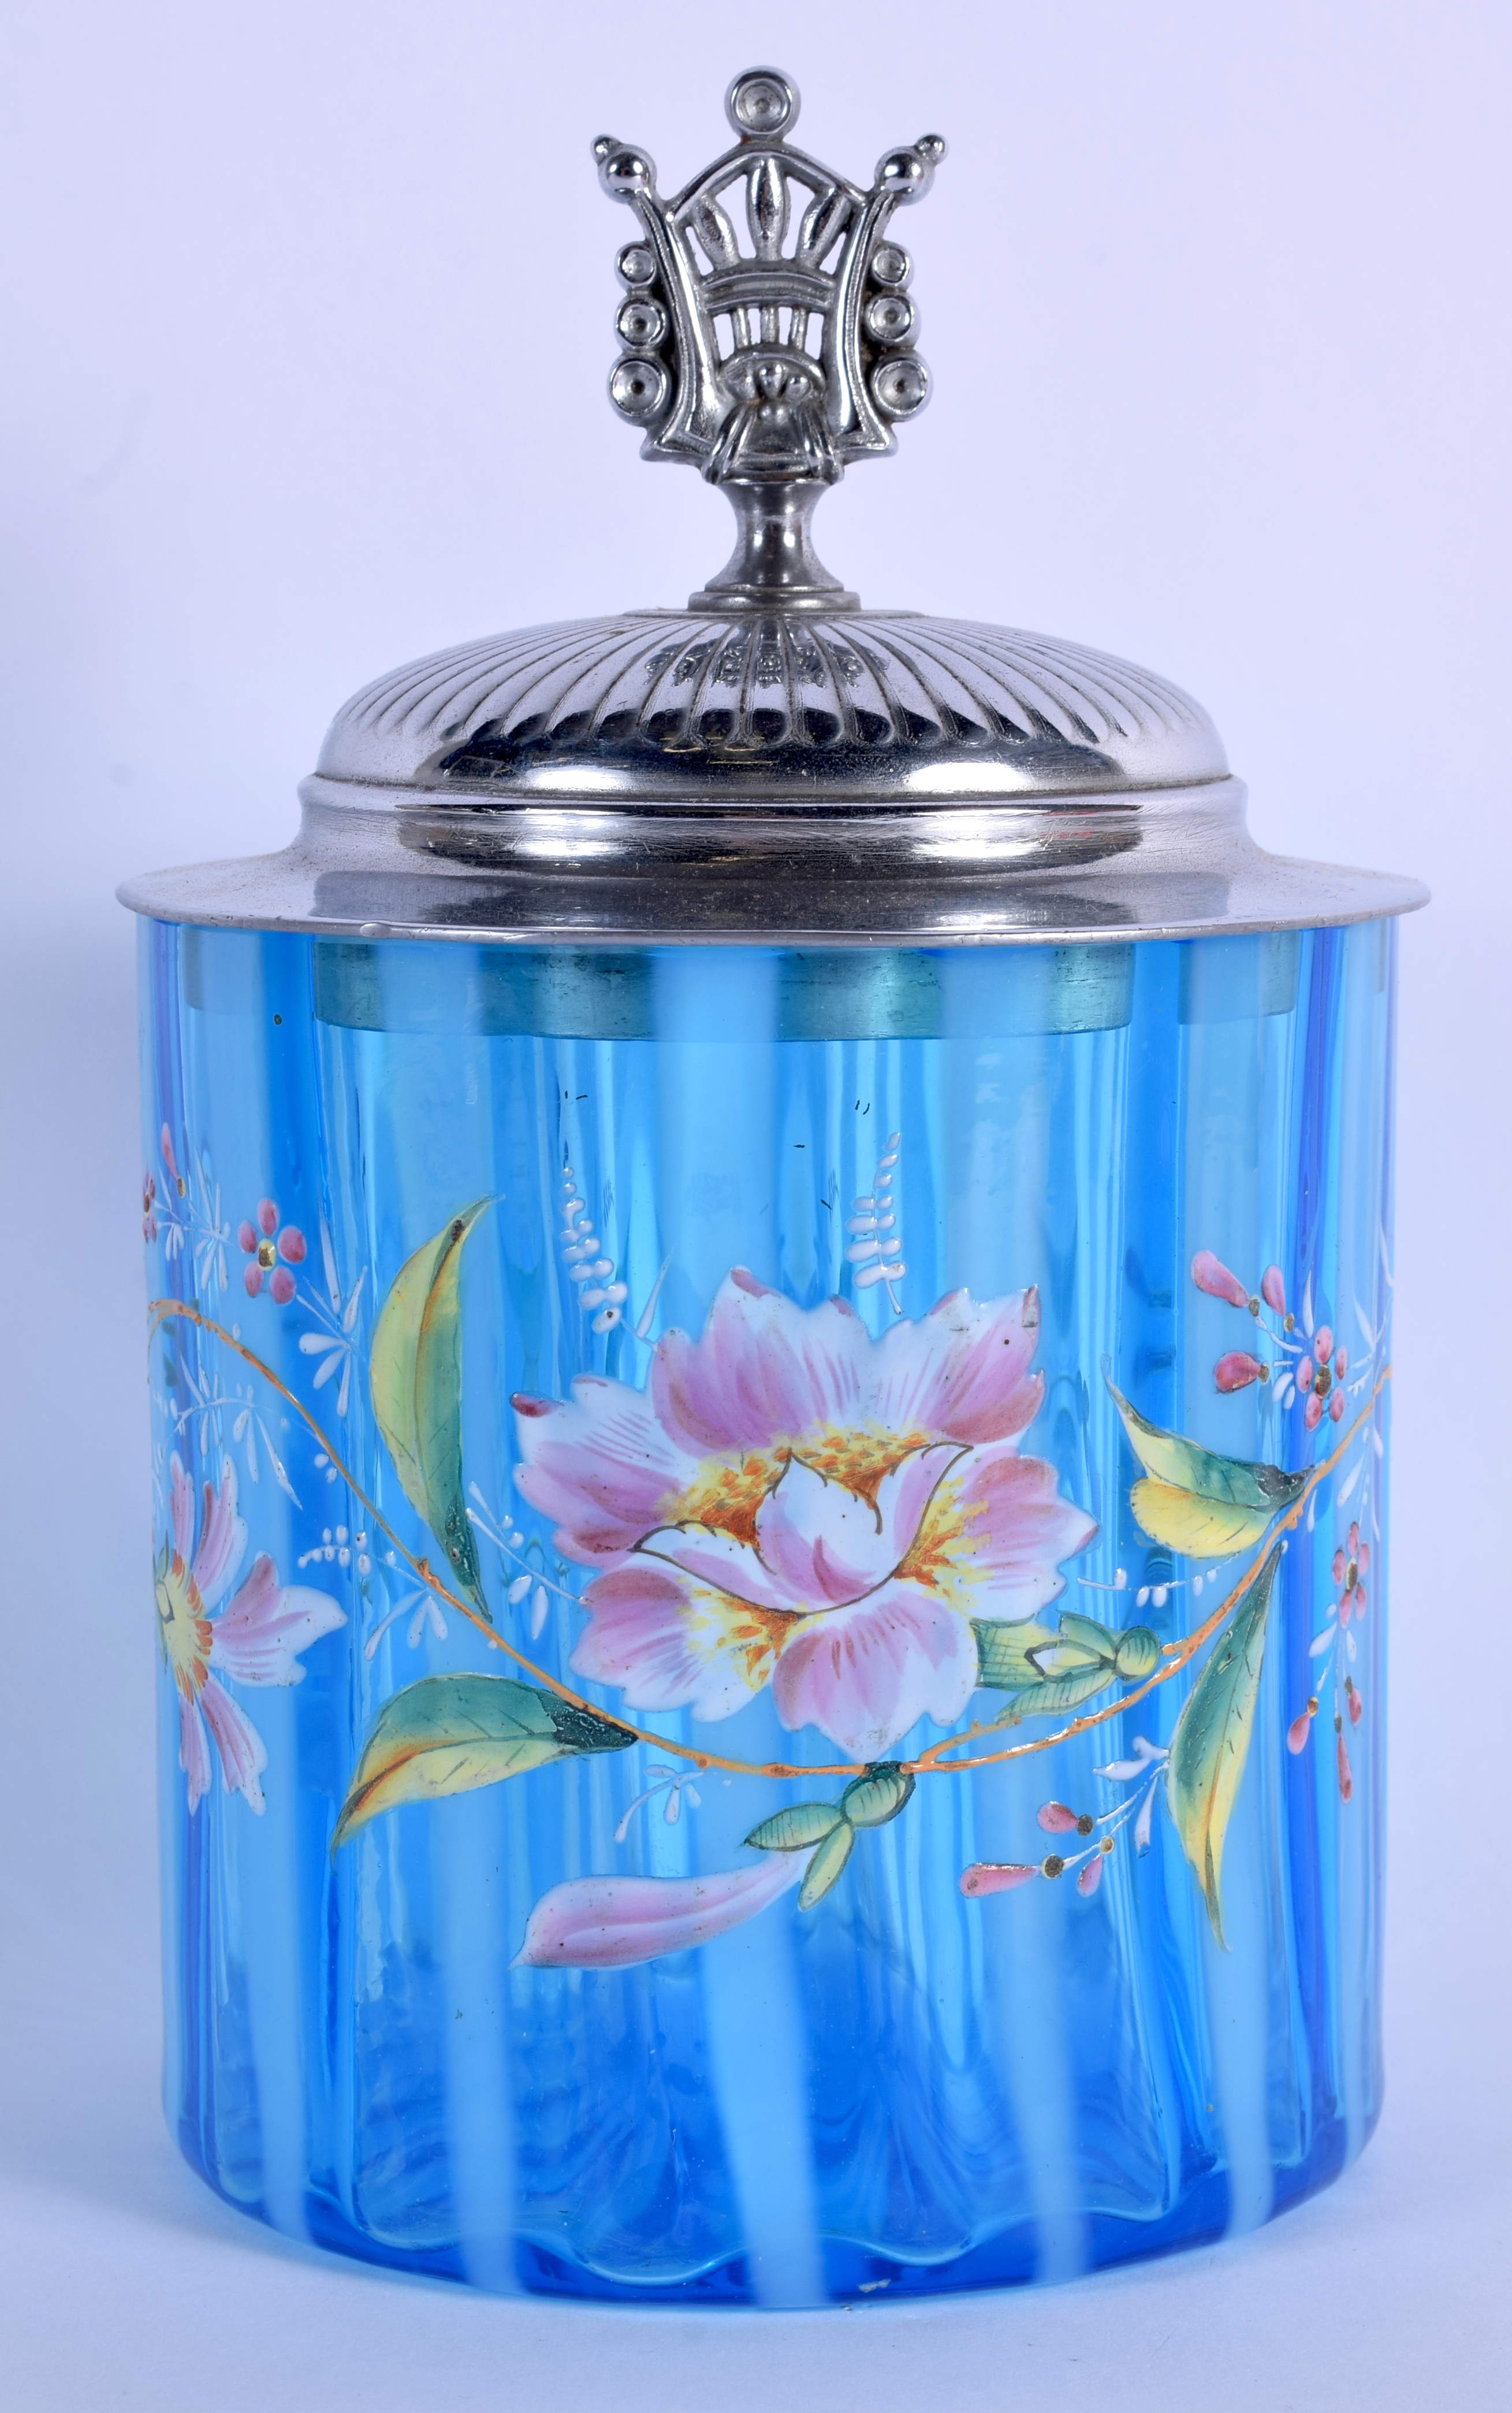 AN EDWARDIAN ENAMELLED BLUE FLASH BISCUIT BARREL AND COVER decorated with flowers. 19 cm high.